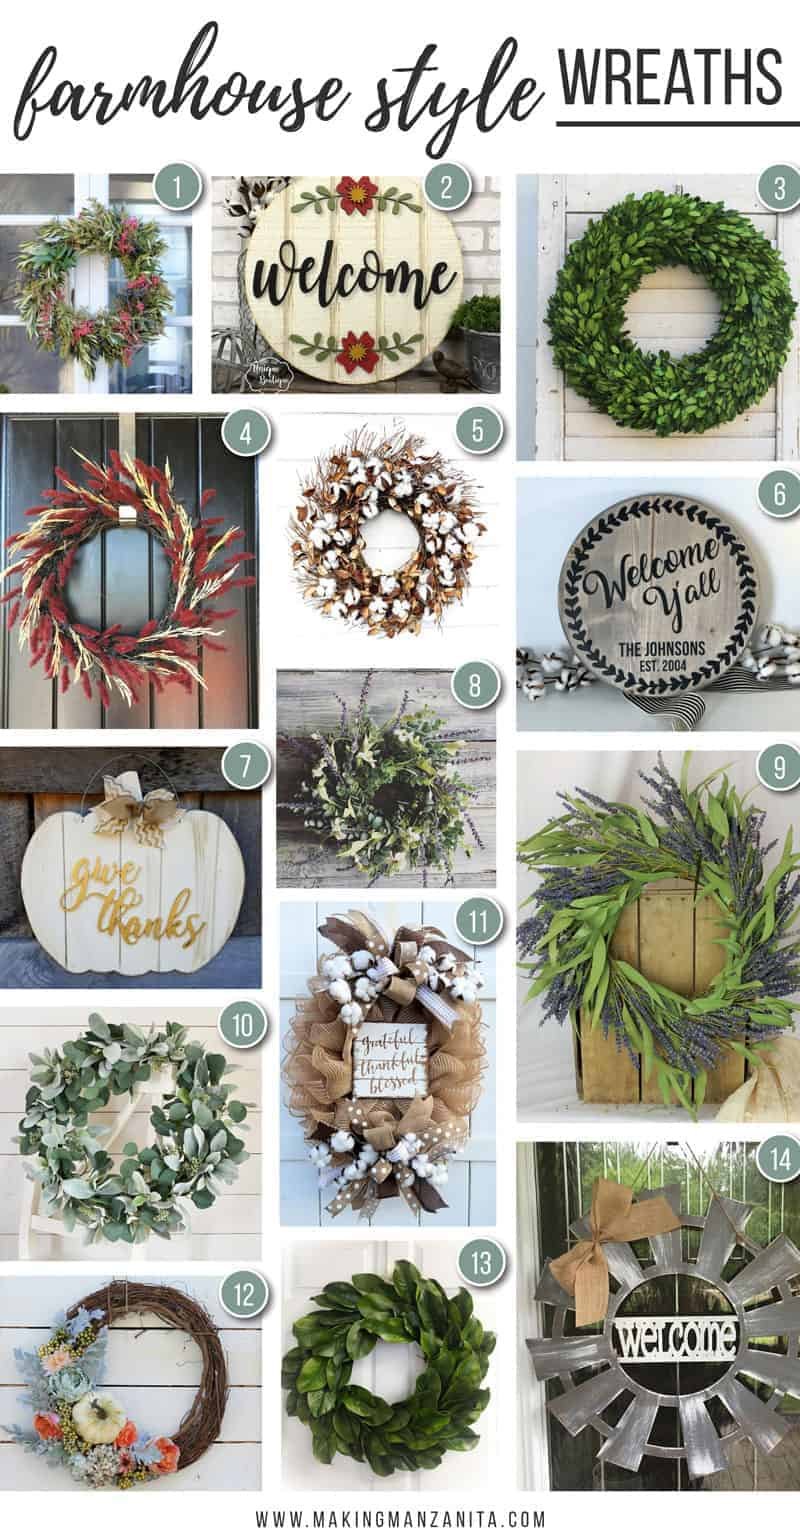 14 Farmhouse style wreaths that you need for your front door! These farmhouse wreaths will give you that fixer upper style on your front door!